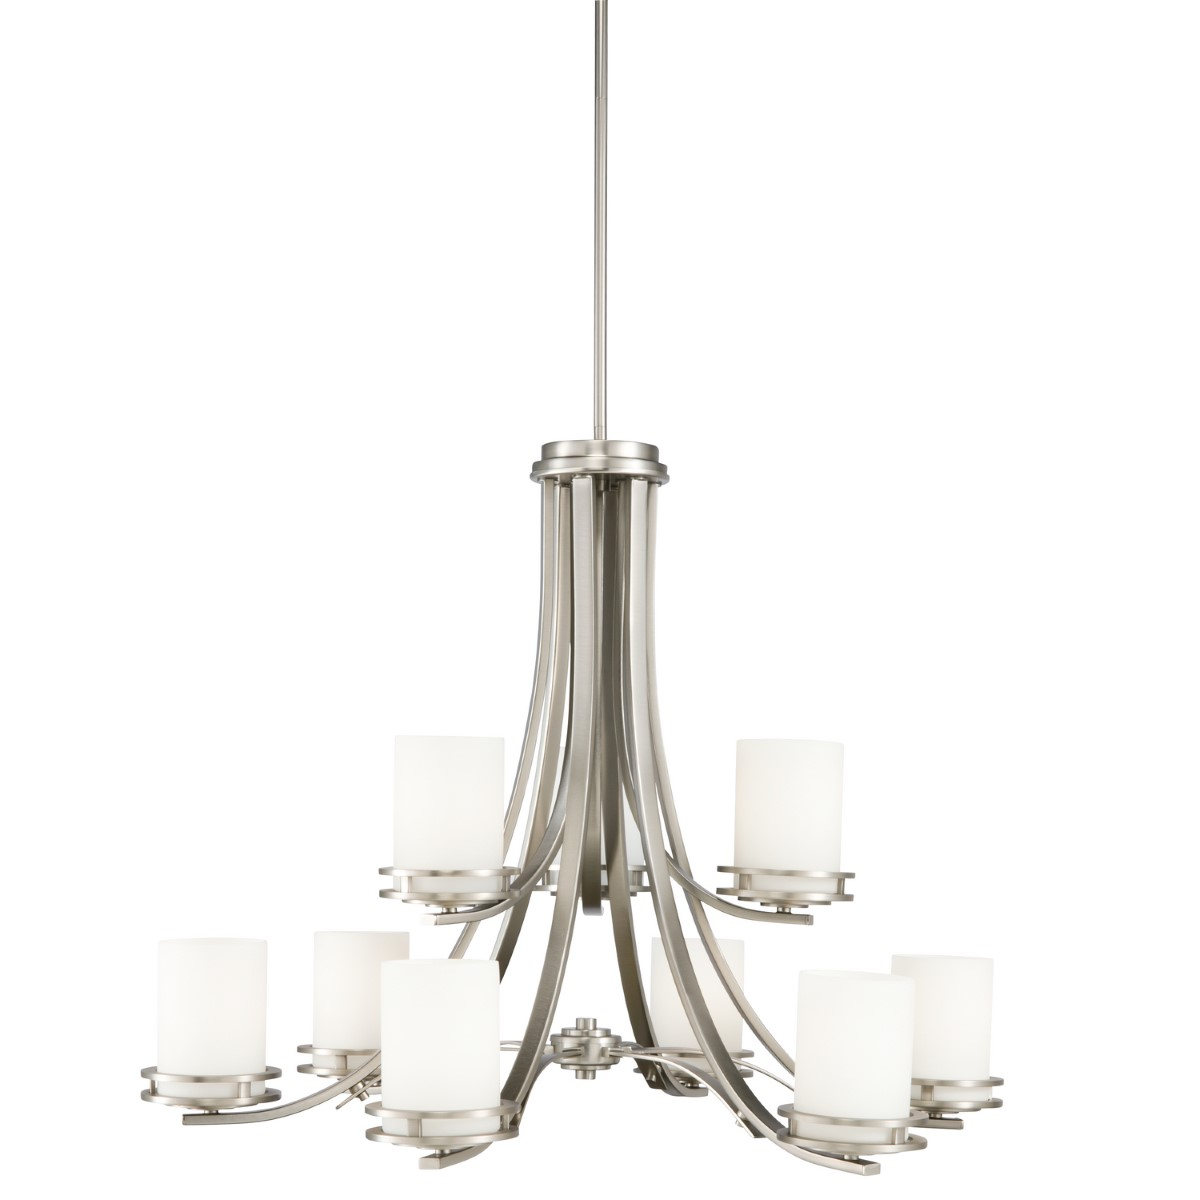 Kichler Hendrik Chandelier with Satin Etched Cased Opal Shade - Brushed Nickel (1674NI)